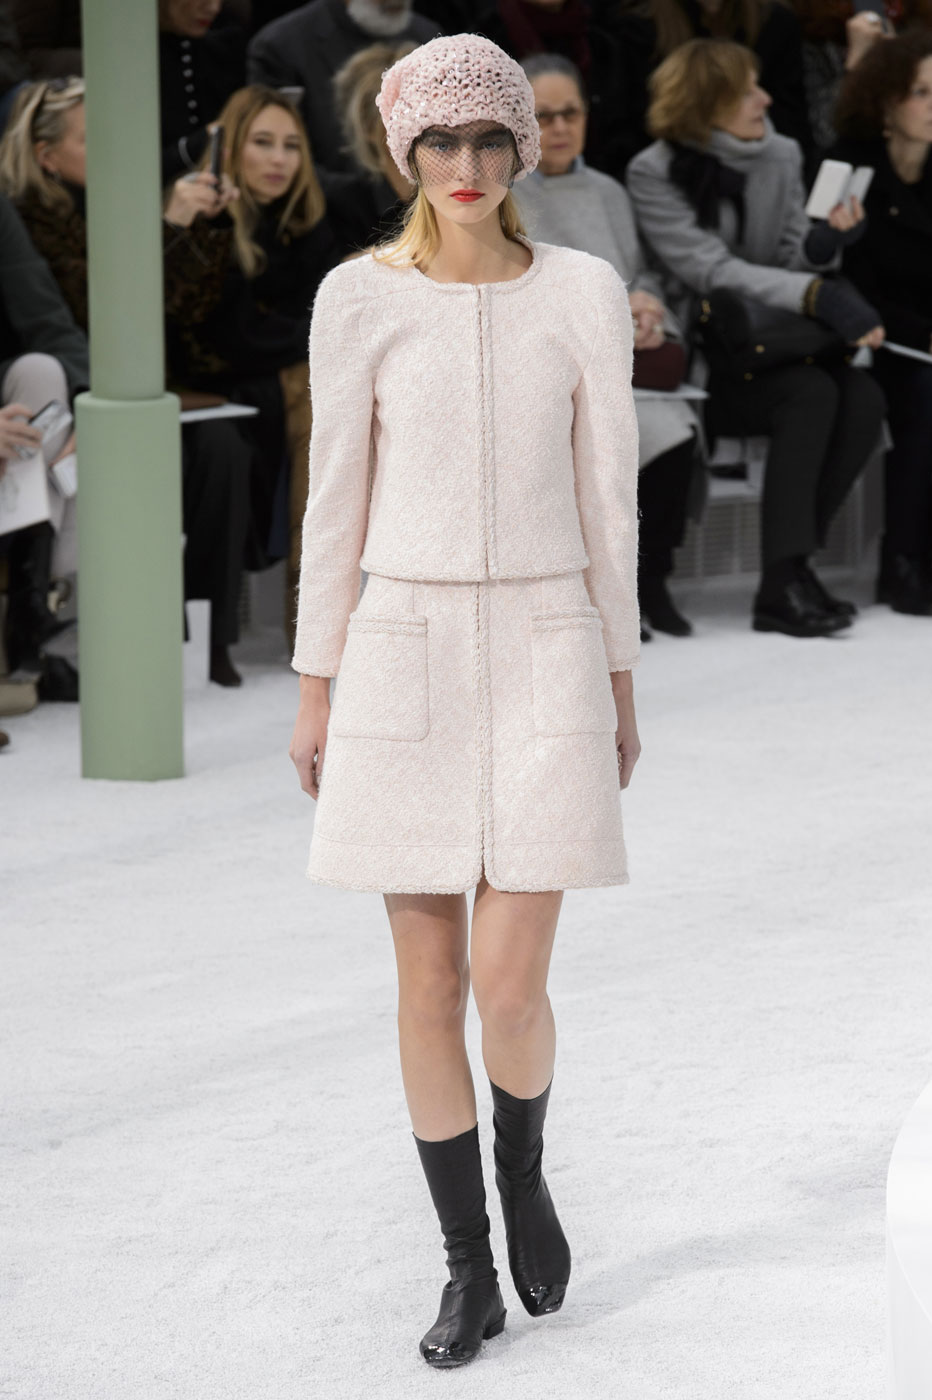 Chanel-fashion-runway-show-haute-couture-paris-spring-summer-2015-the-impression-023